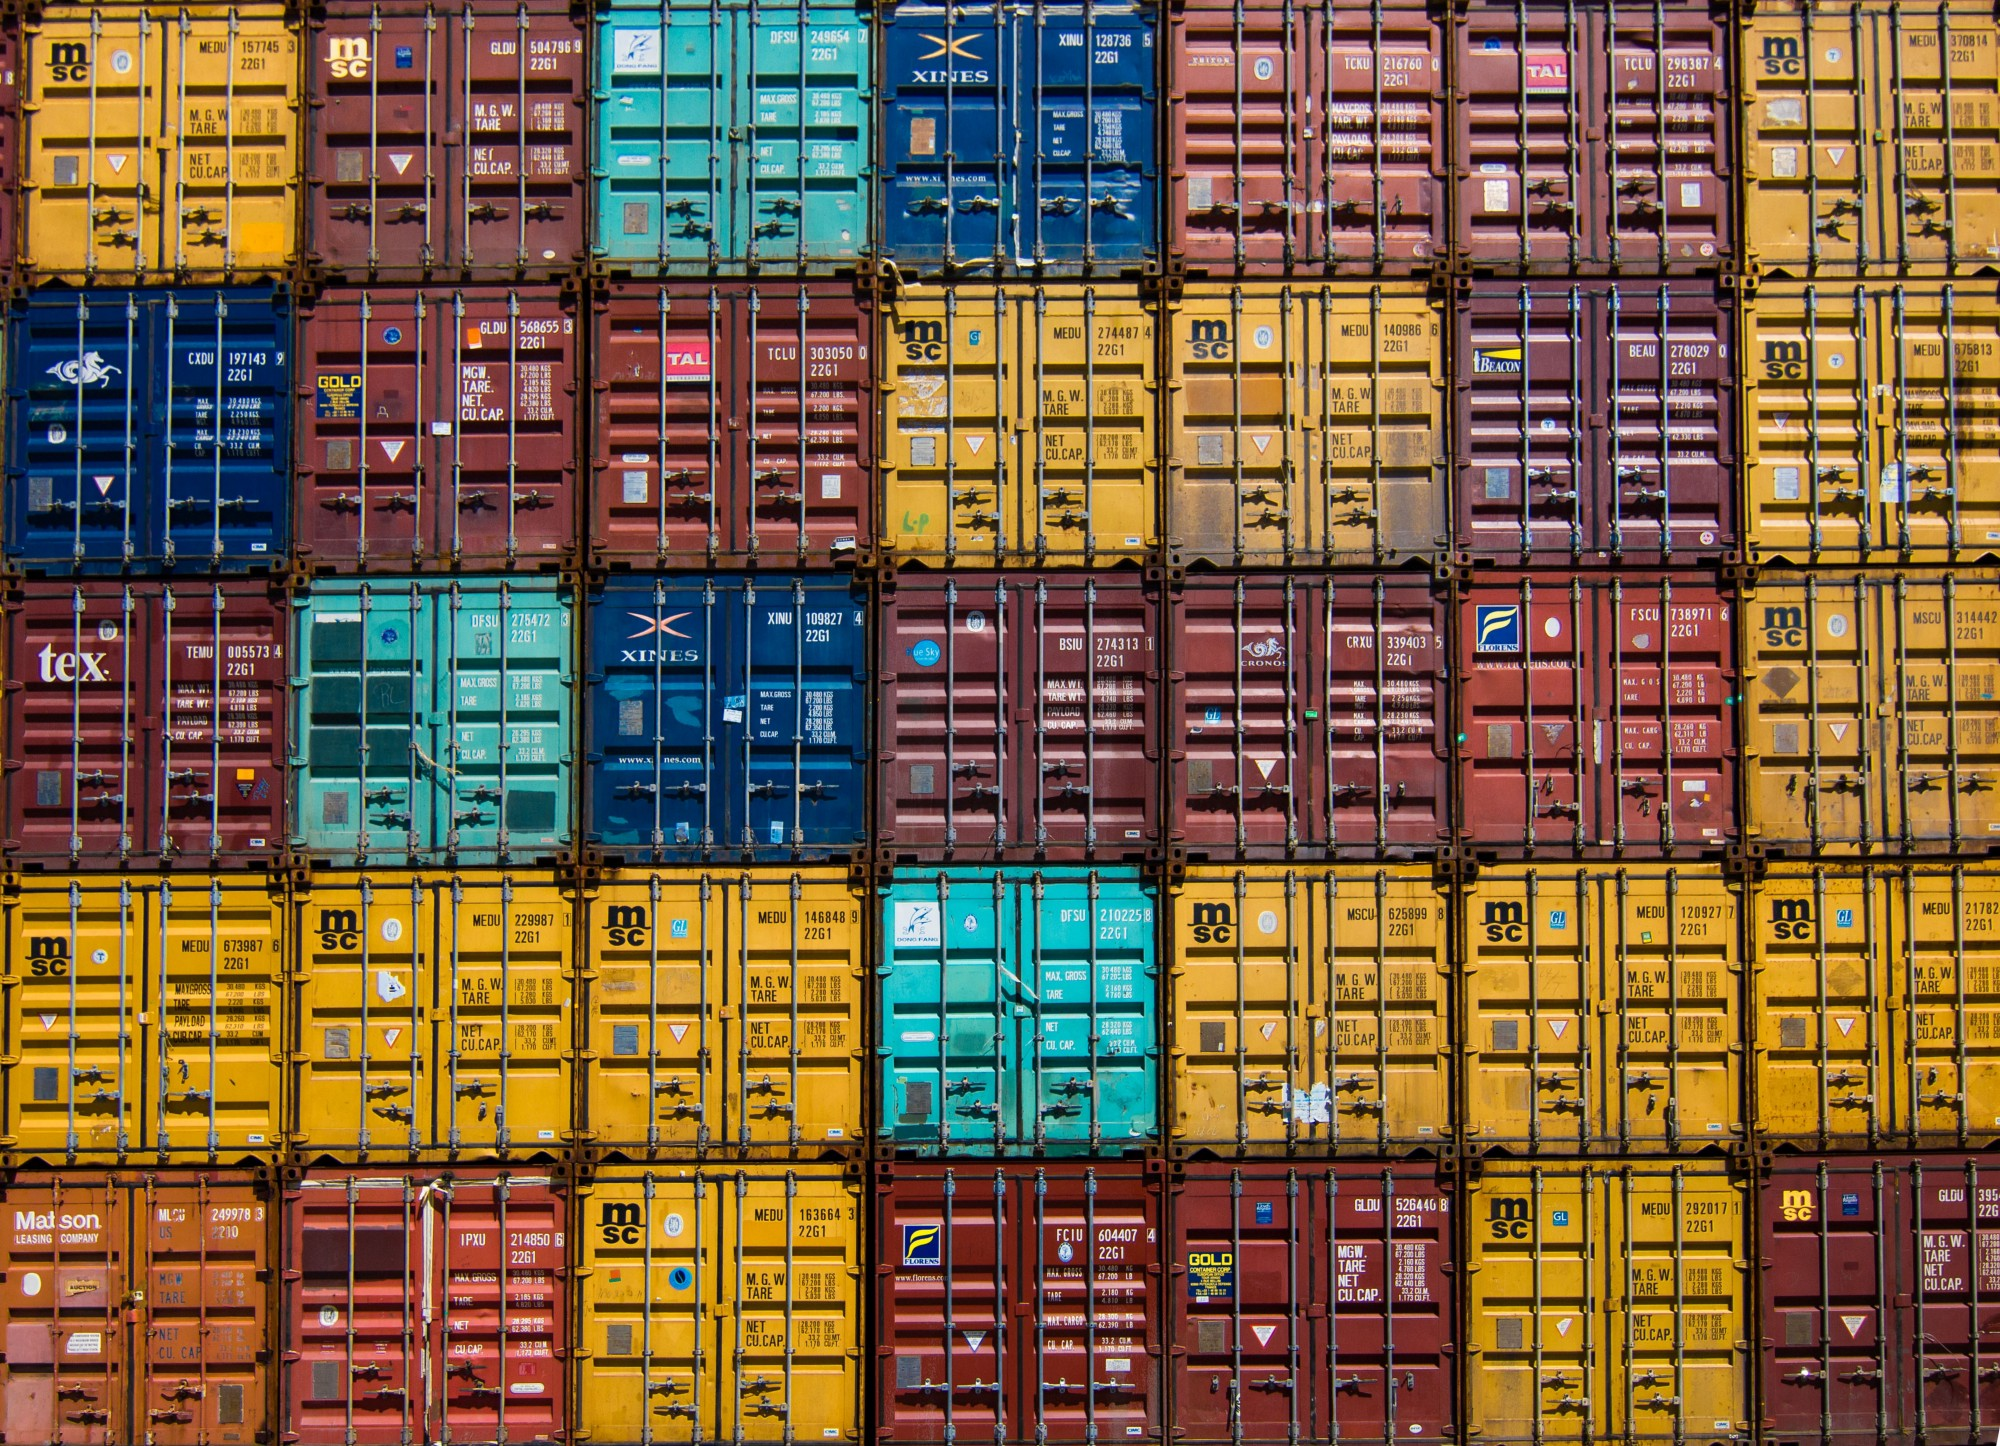 I discovered an API that helps you ship ecommerce products through multiple courier services. Here's how to useit.